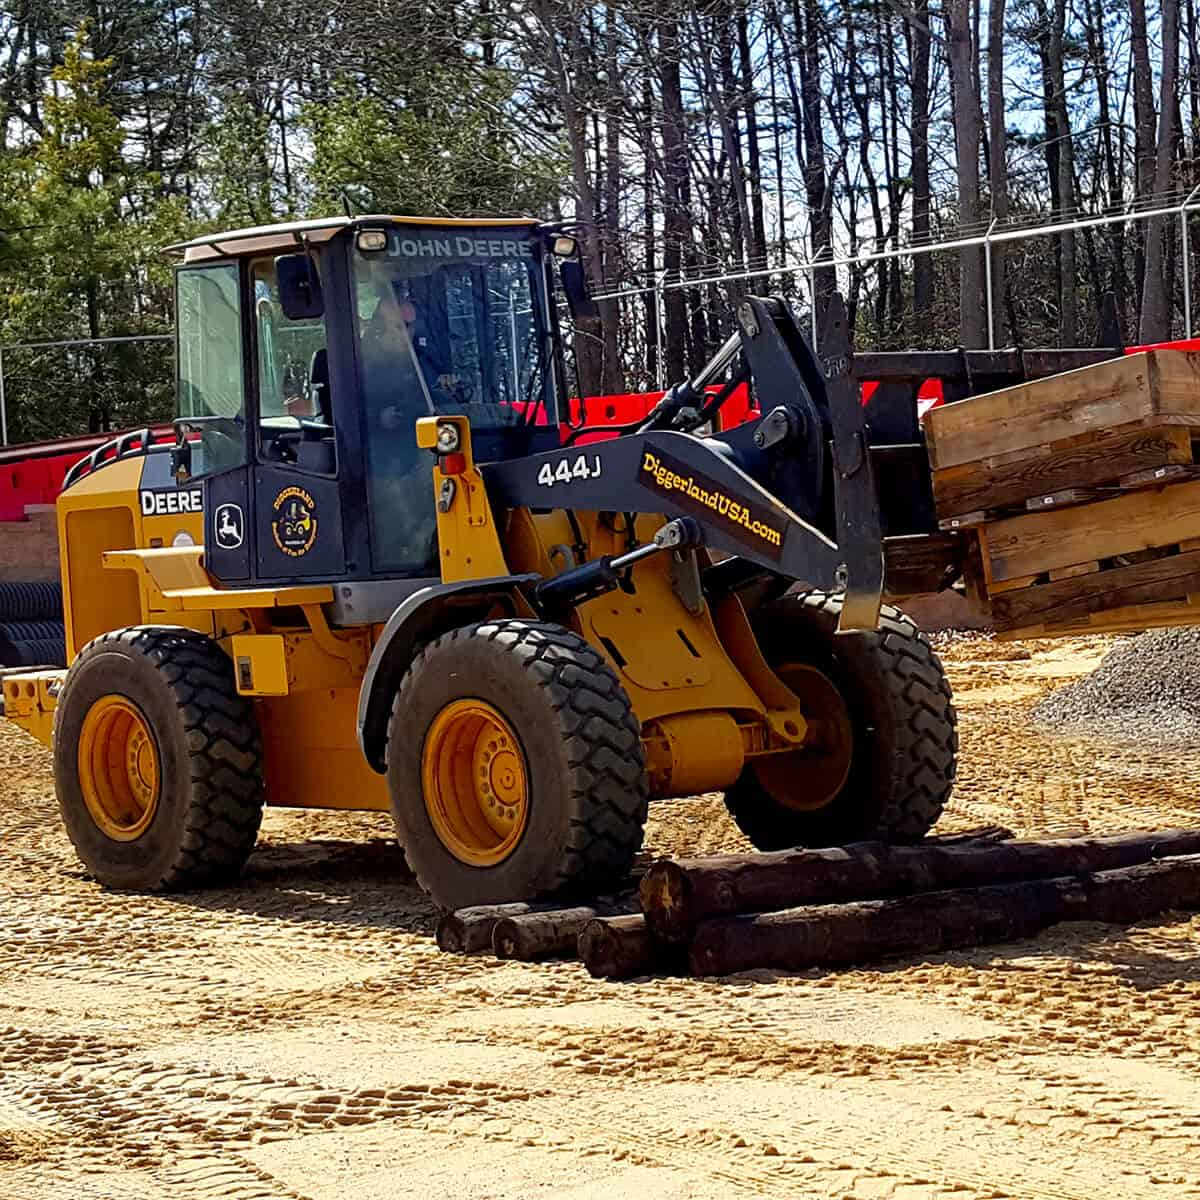 Wheel loader climbs logs with pallets on forks